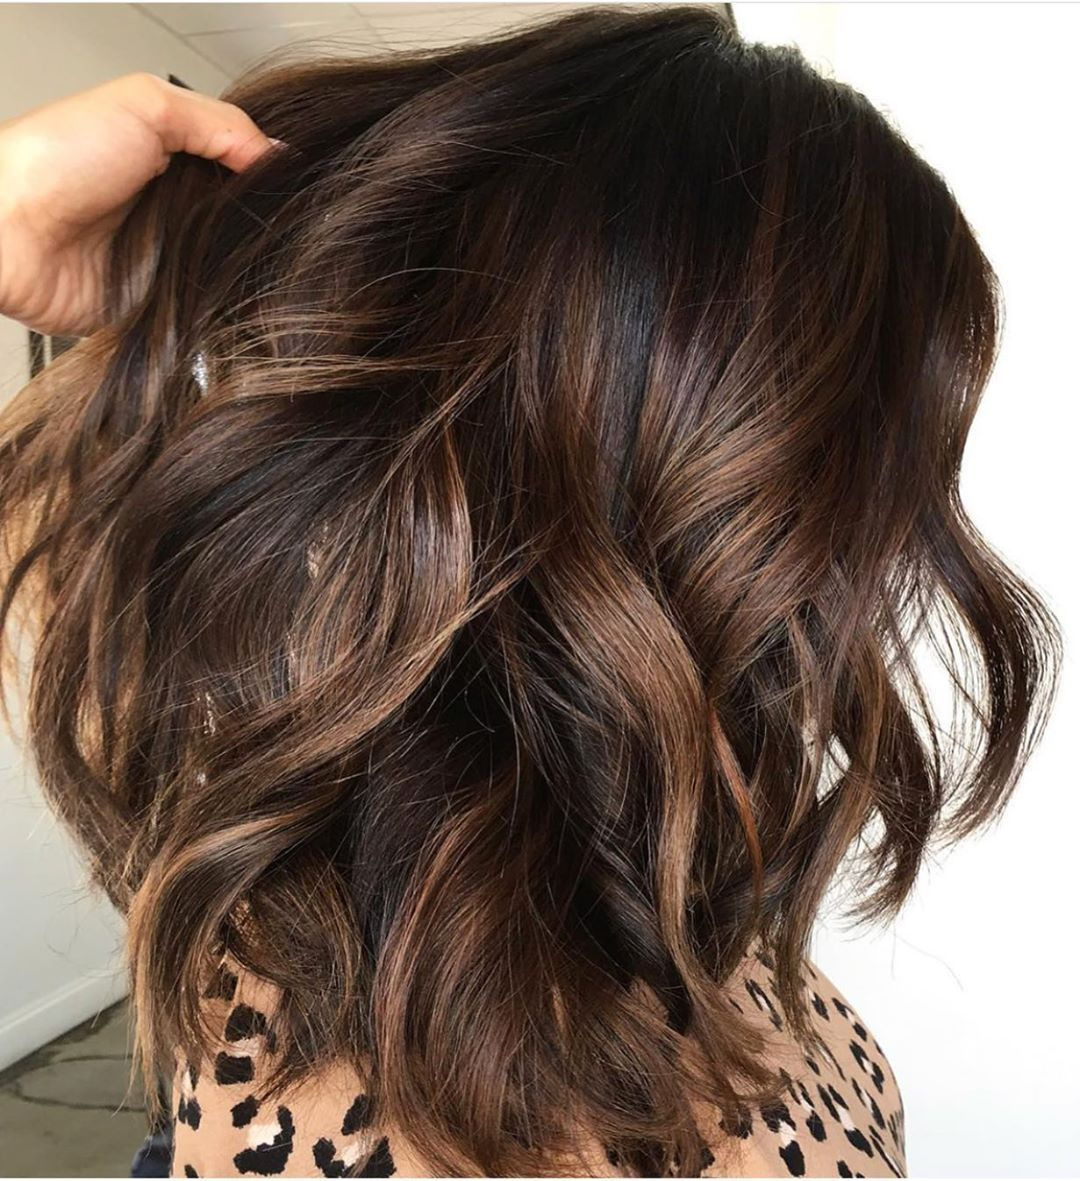 If you just use the medium long hair as a short to long transition, or you always love this ...